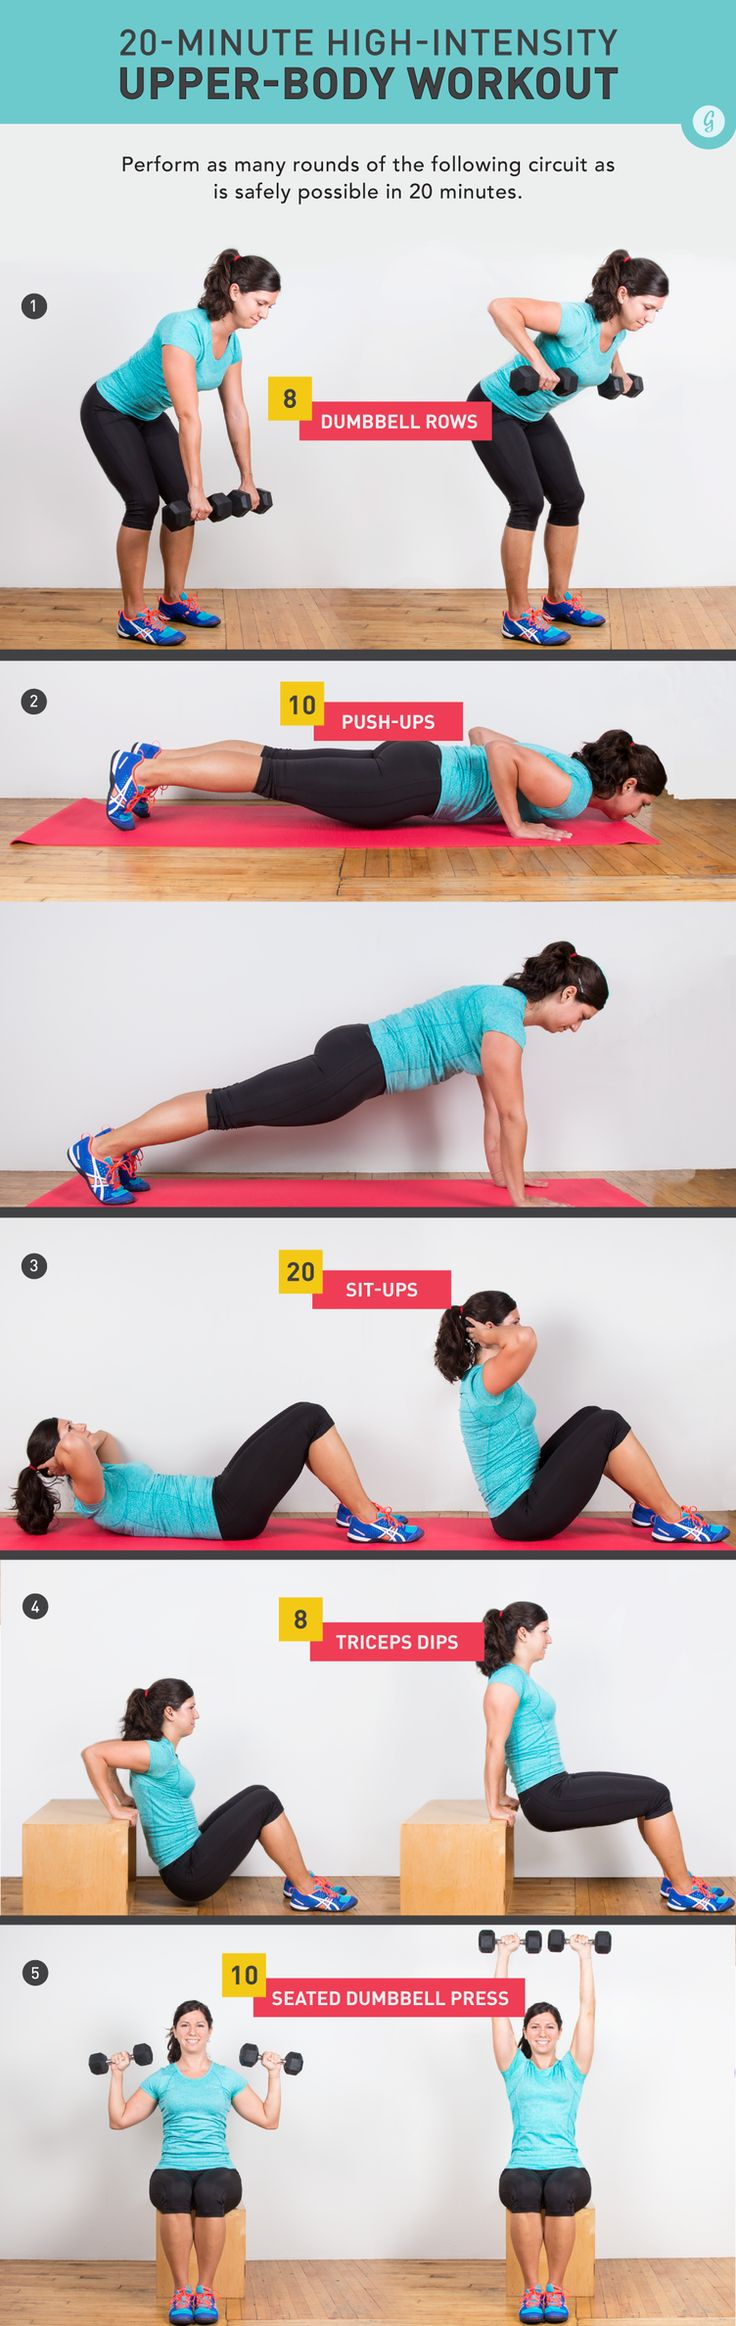 Pump Those Arms #upperbody #workout http://greatist.com/move/stay-fit-positive-while-injured